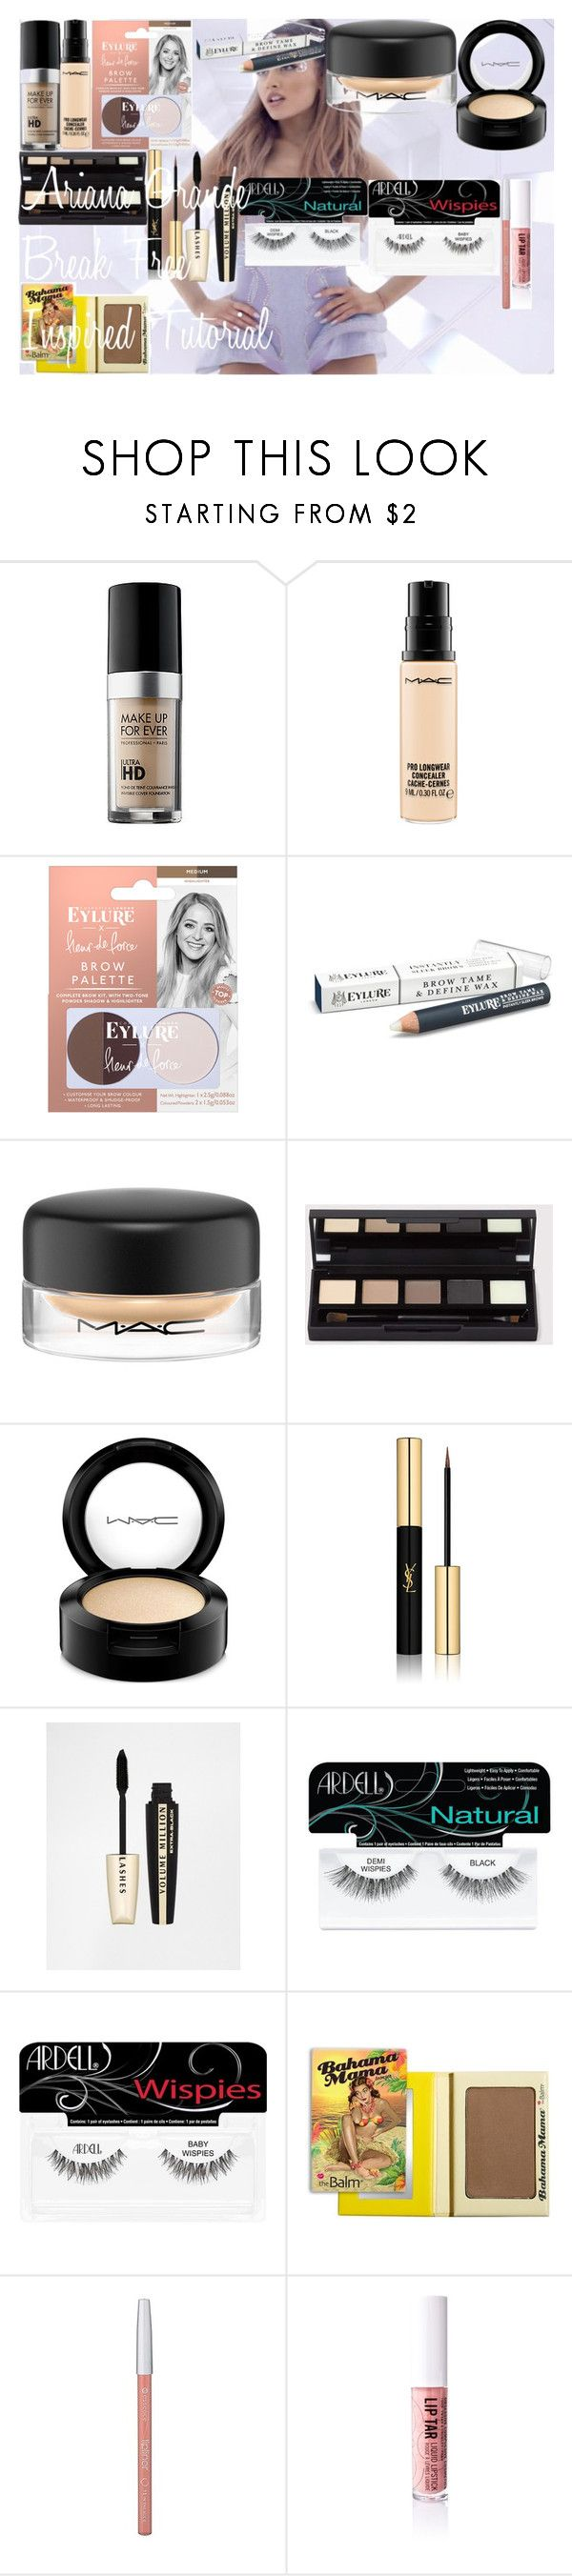 ♡ Ariana Grande Break Free Inspired Tutorial ♡ by oroartye-1 on Polyvore featuring beauty, MAKE UP FOR EVER, Yves Saint Laurent, MAC Cosmetics, Obsessive Compulsive Cosmetics, eylure, L'Oréal Paris, Ardell and Essence